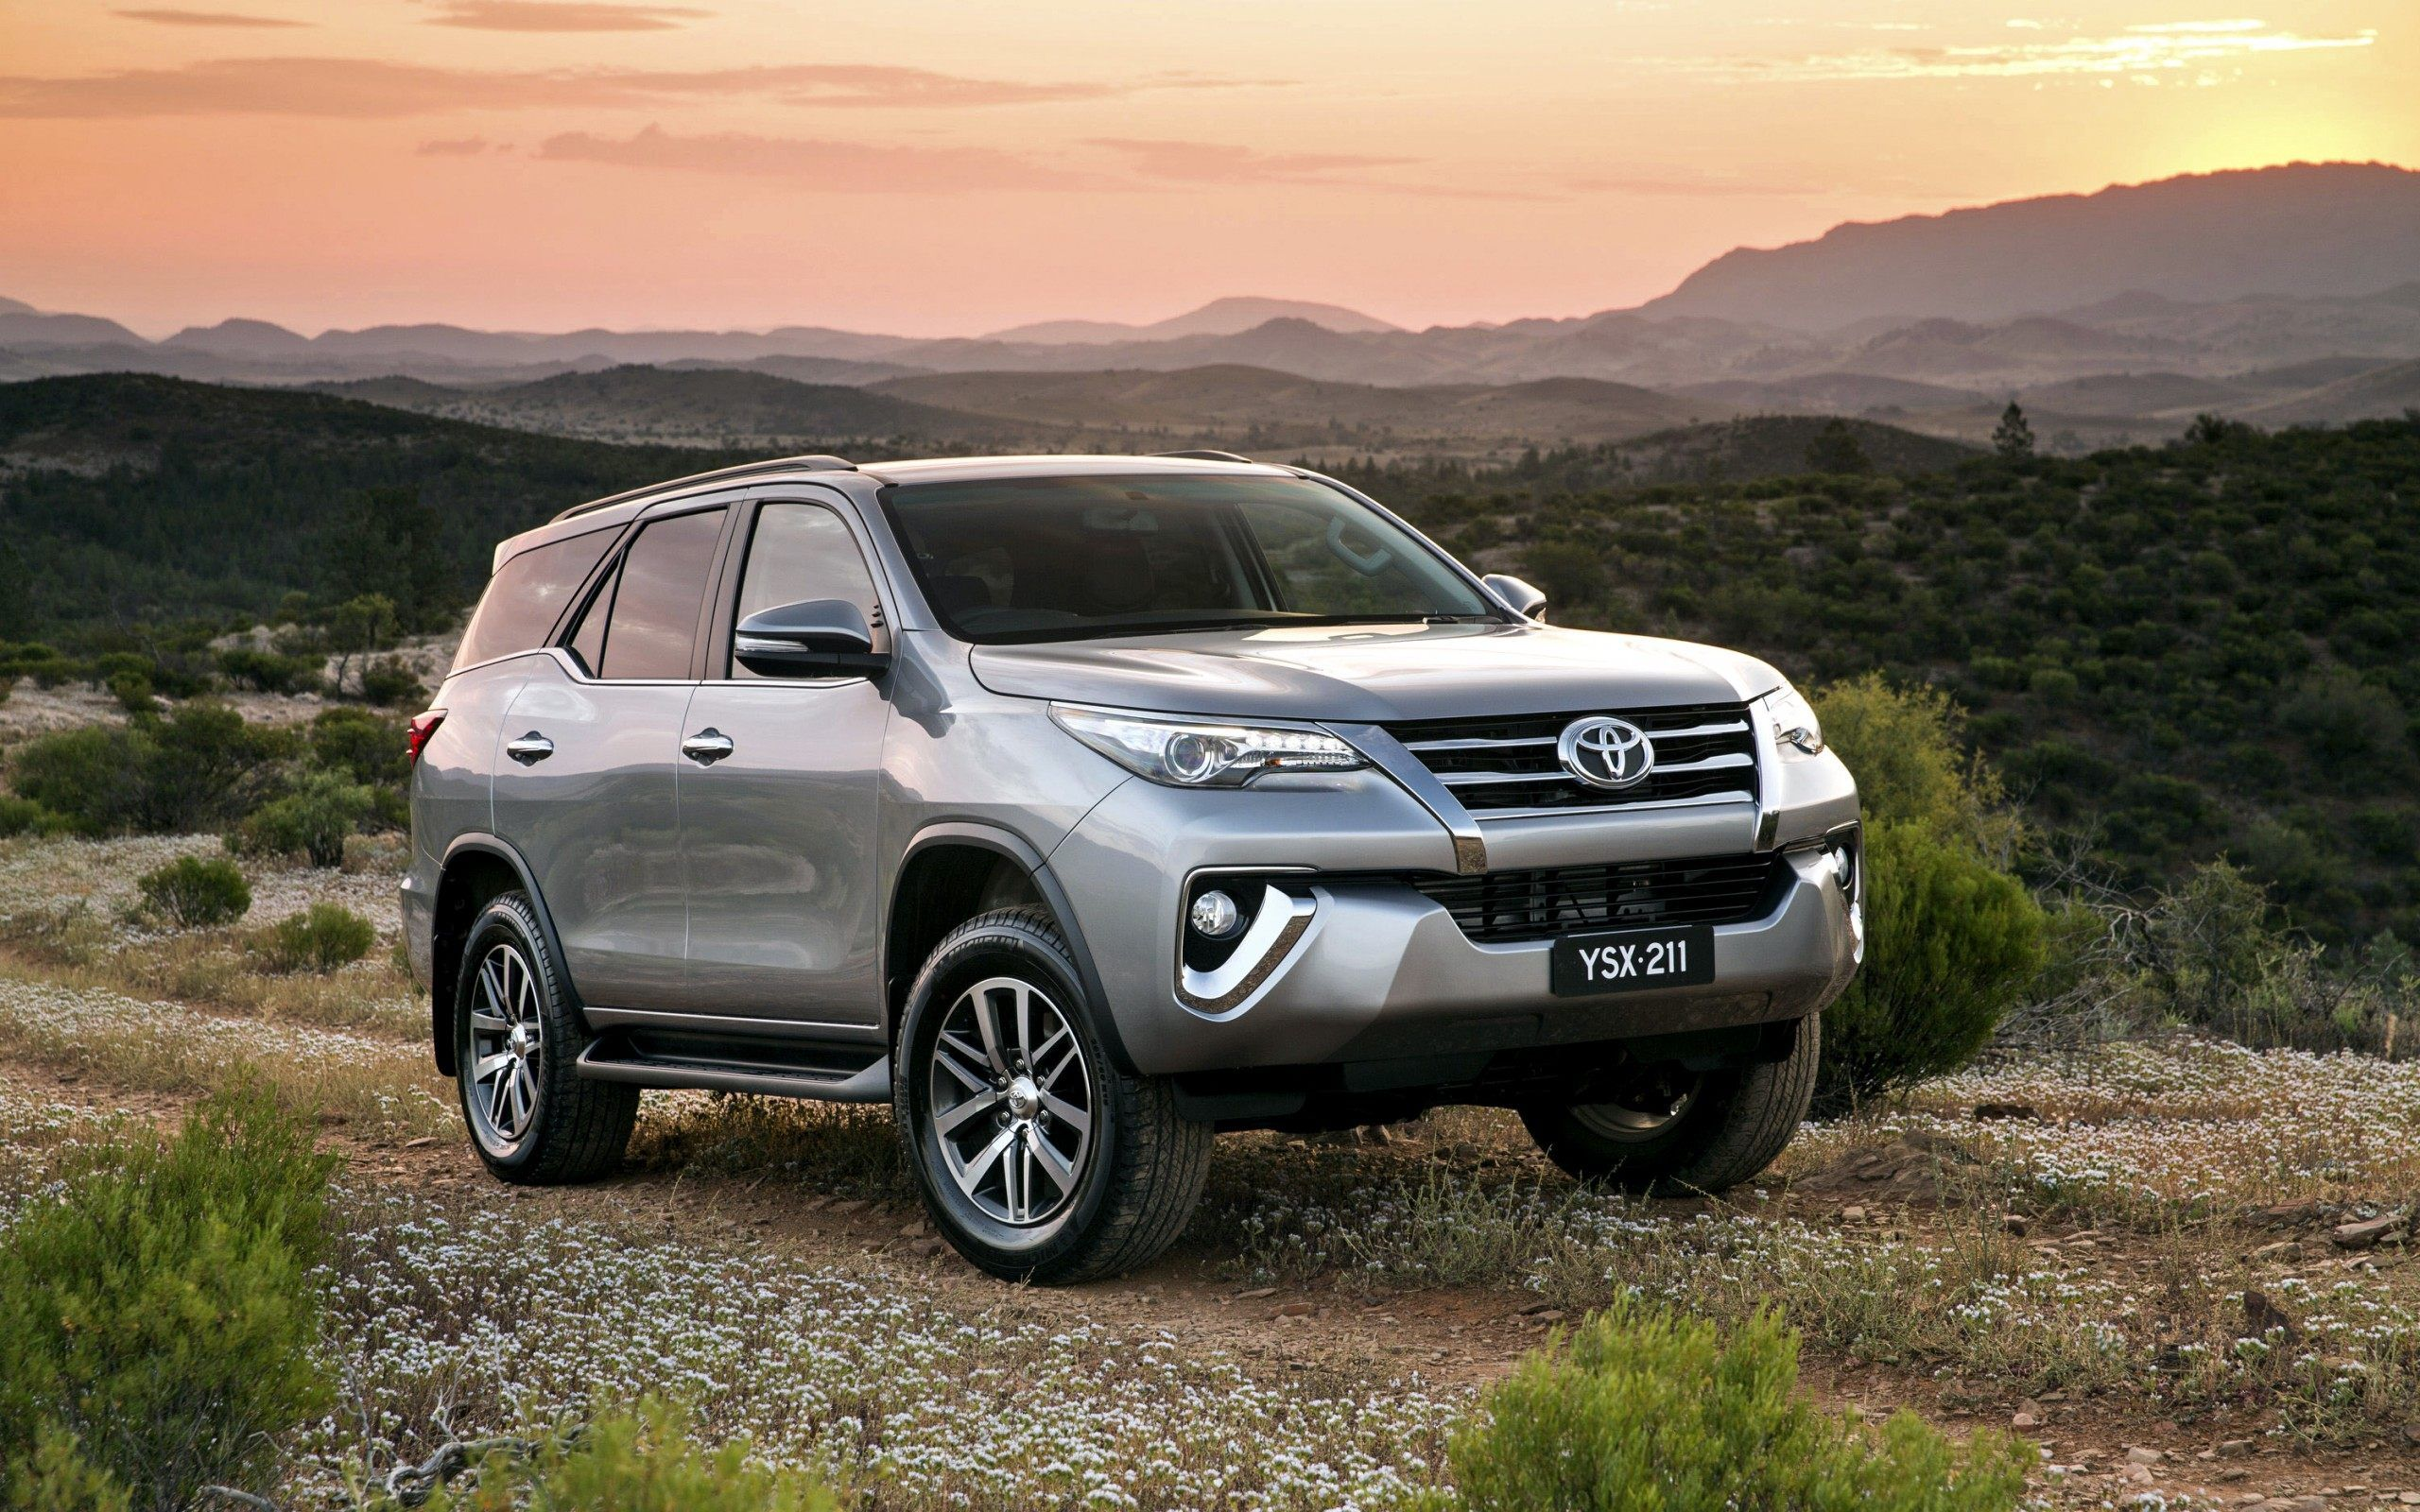 2016 Toyota Fortuner Wallpapers Kokoangel Com Images Wallpapers